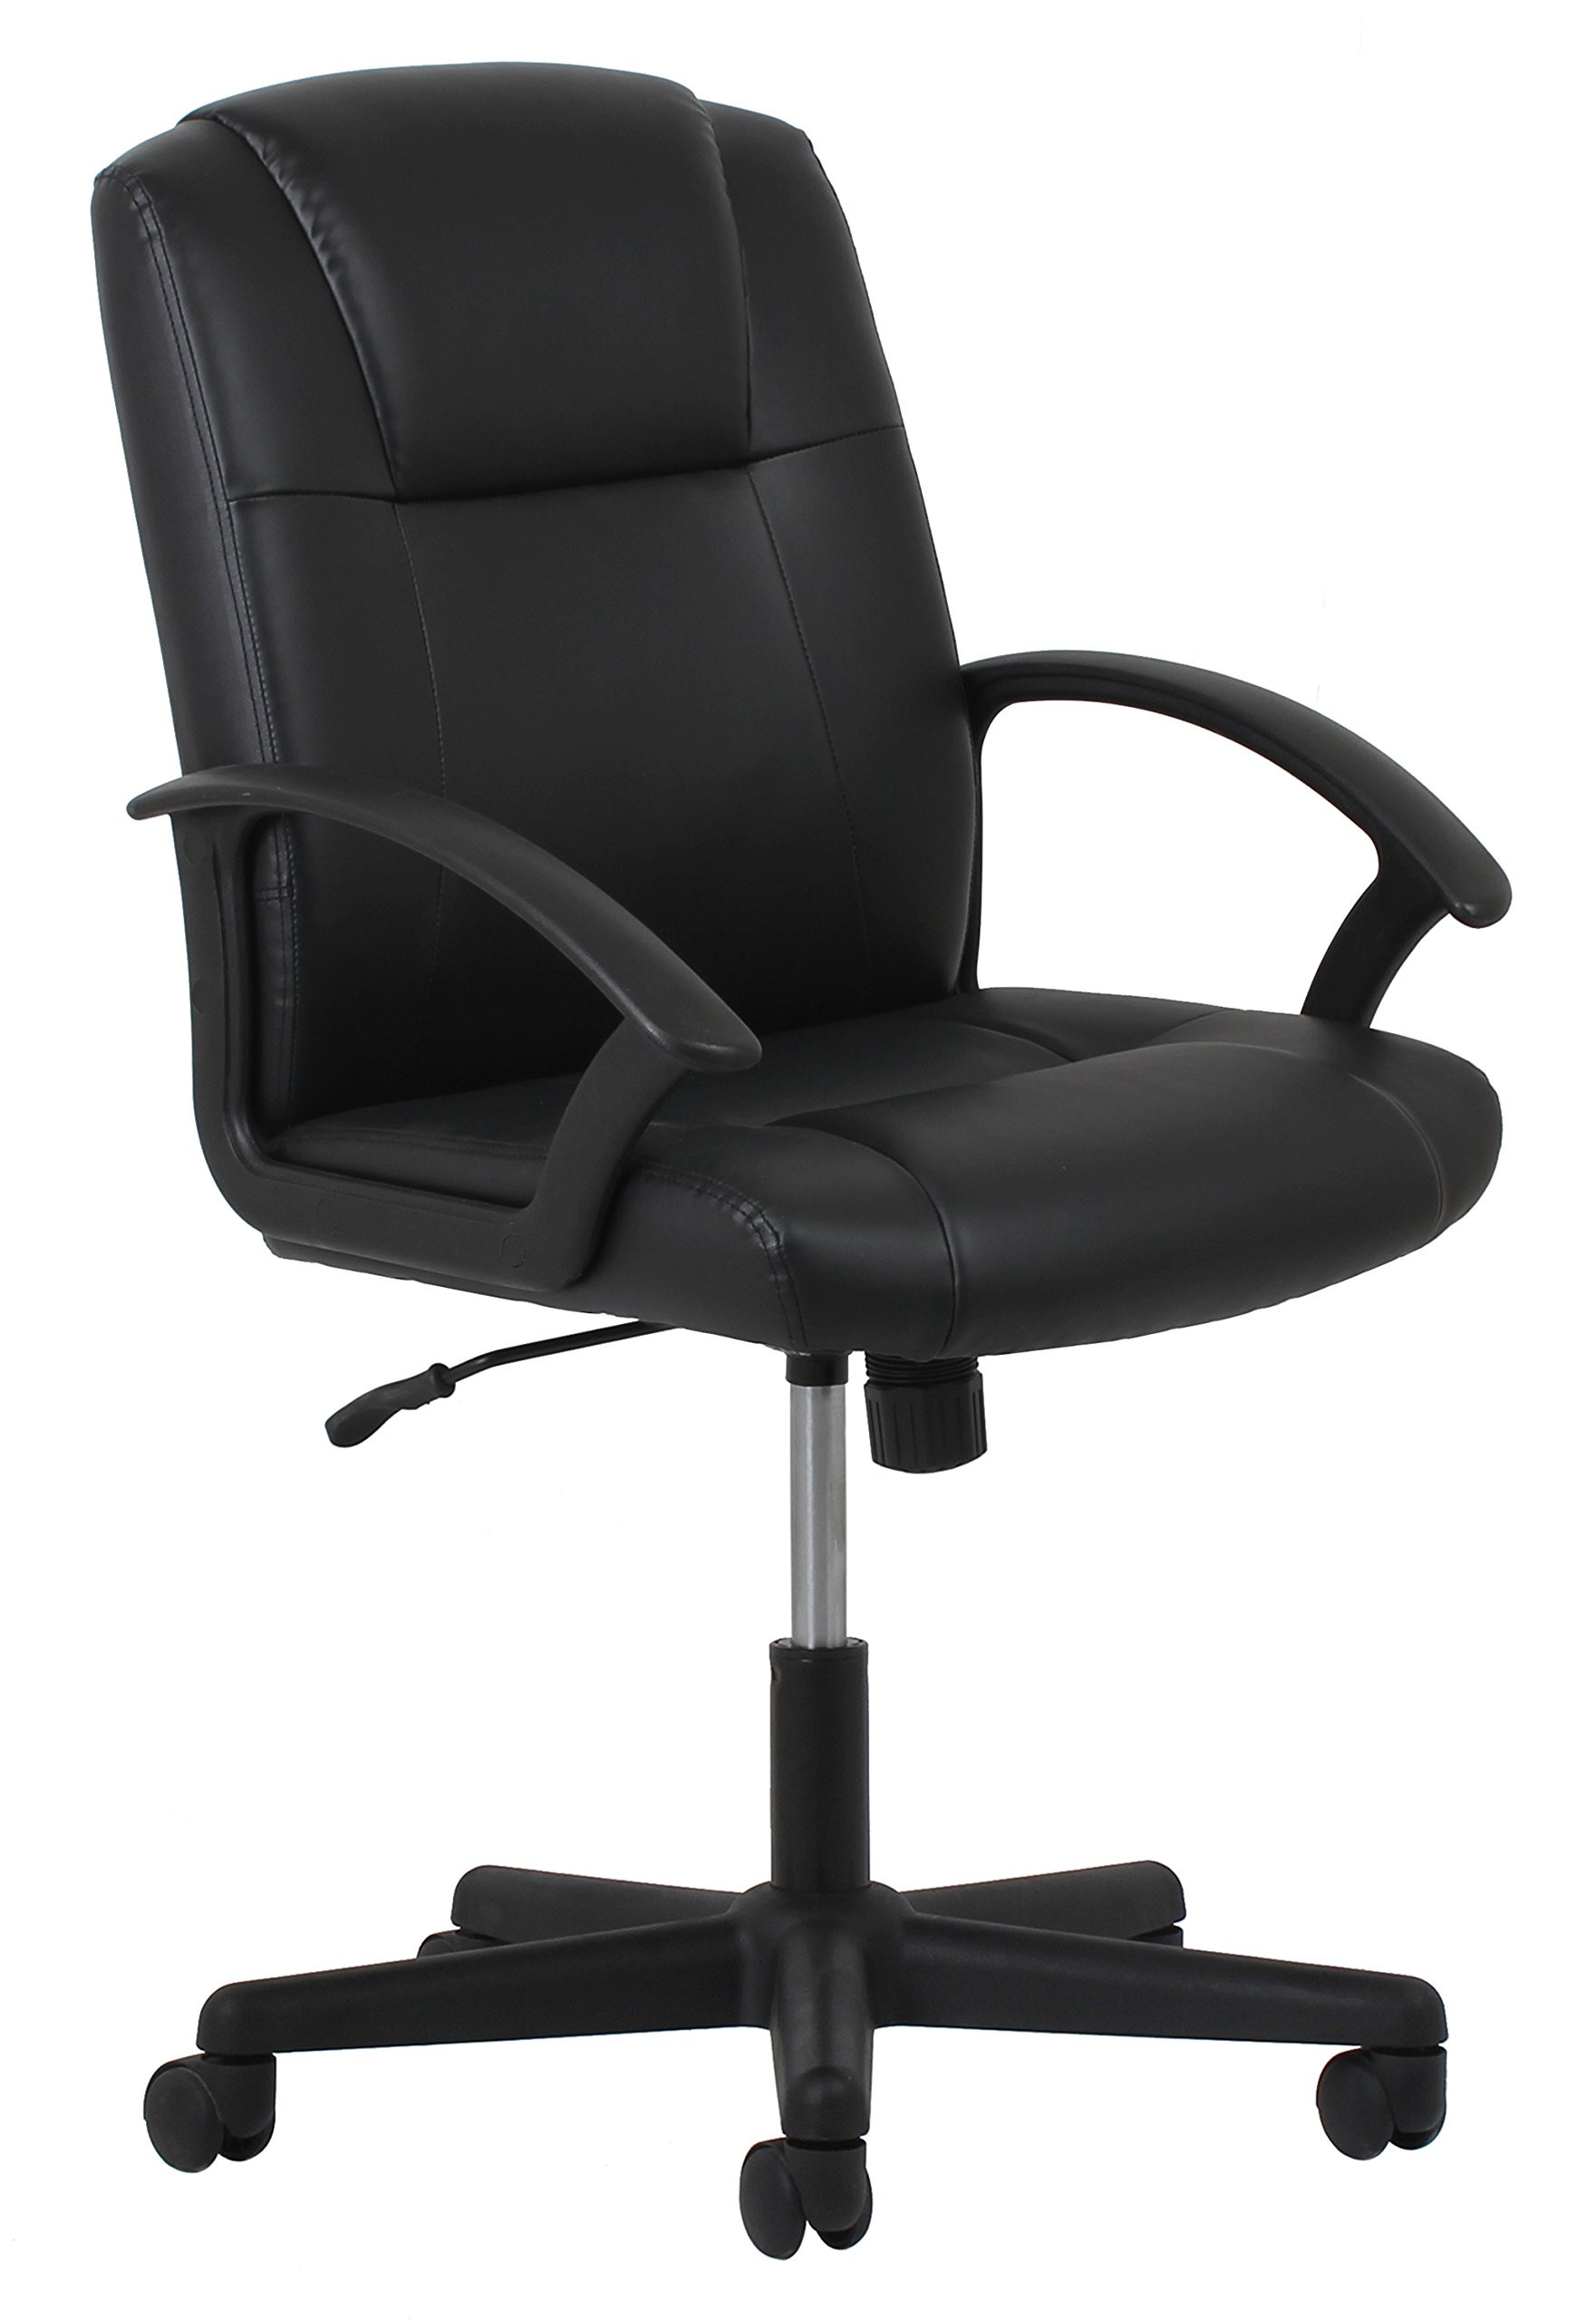 Best ideas about Best Home Office Chair . Save or Pin Best Rated in Home fice Desk Chairs & Helpful Customer Now.